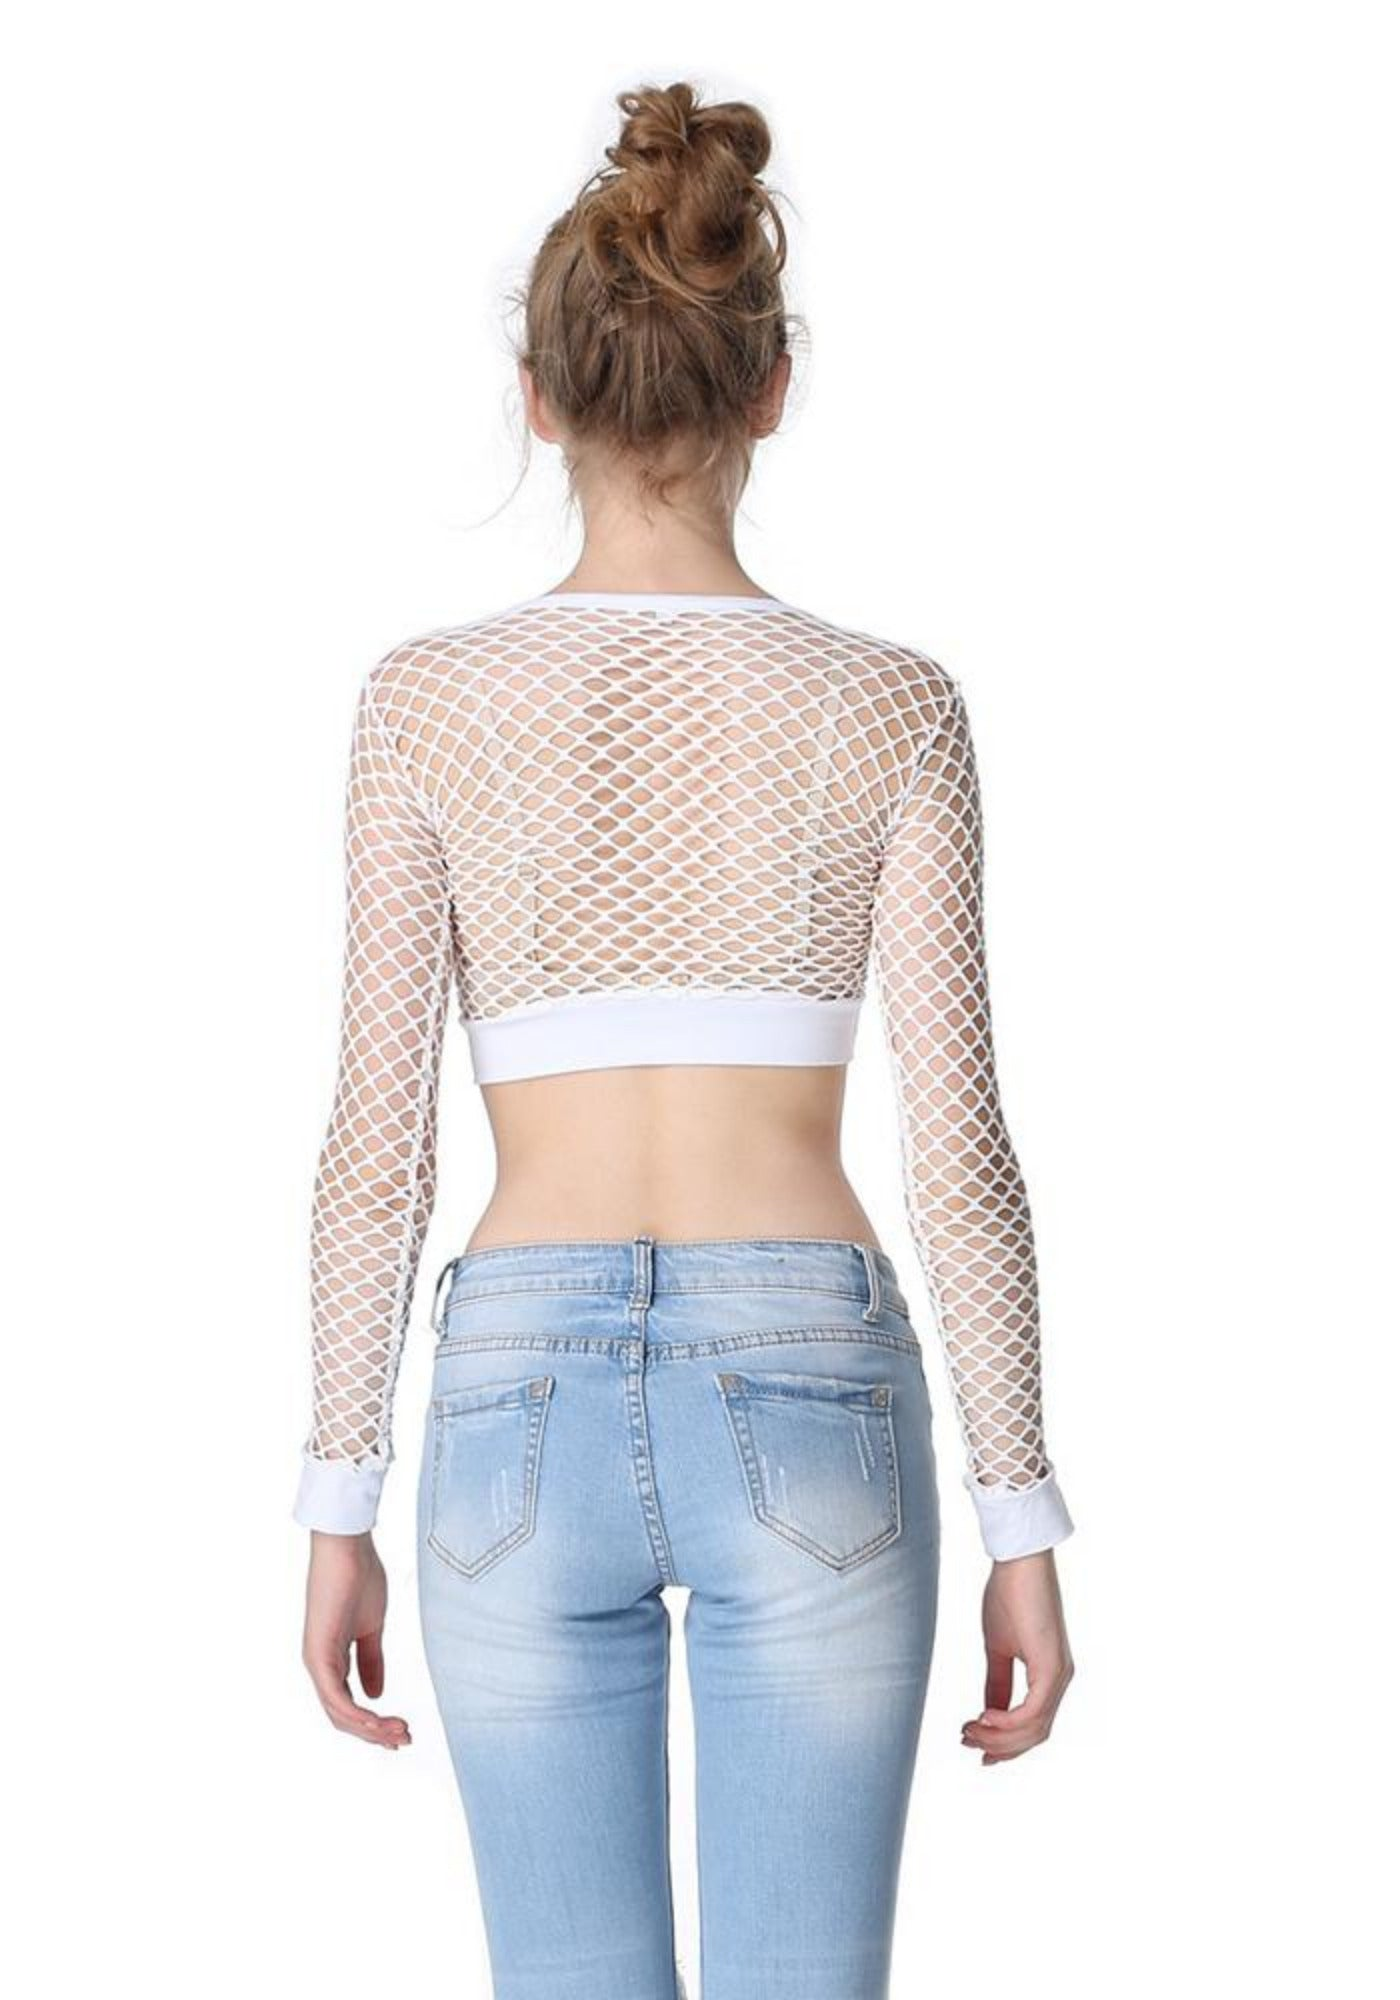 Susi's Catchy Fishnet Top-3